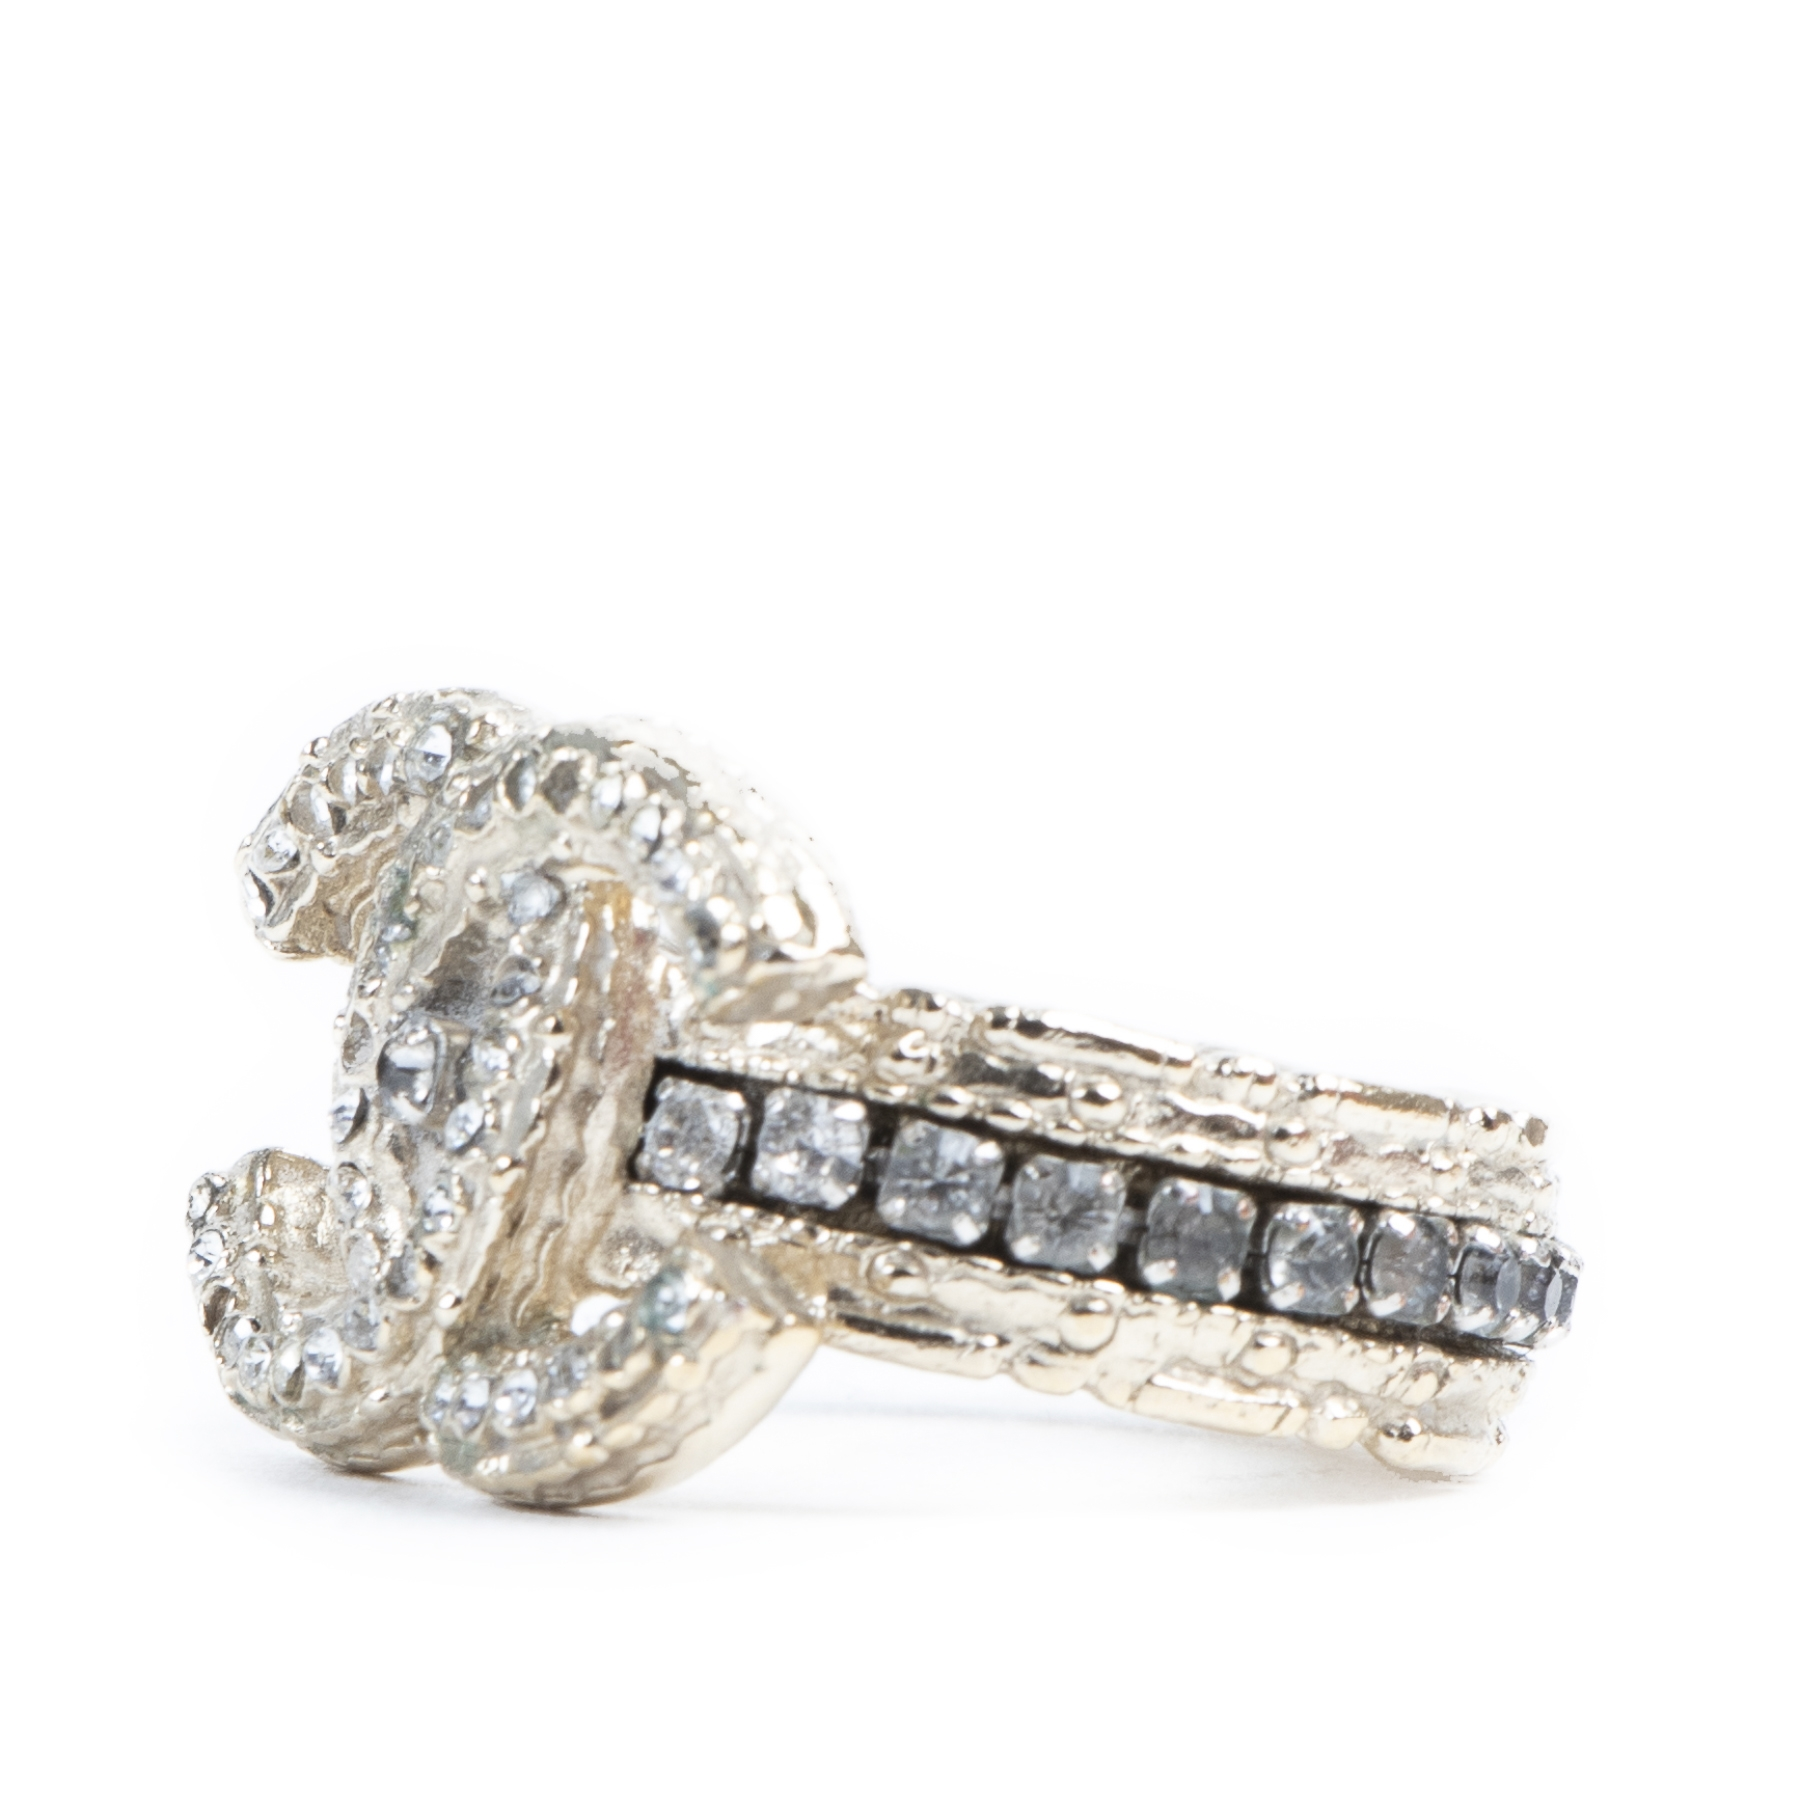 Chanel 2011 Double CC Crystal Ring